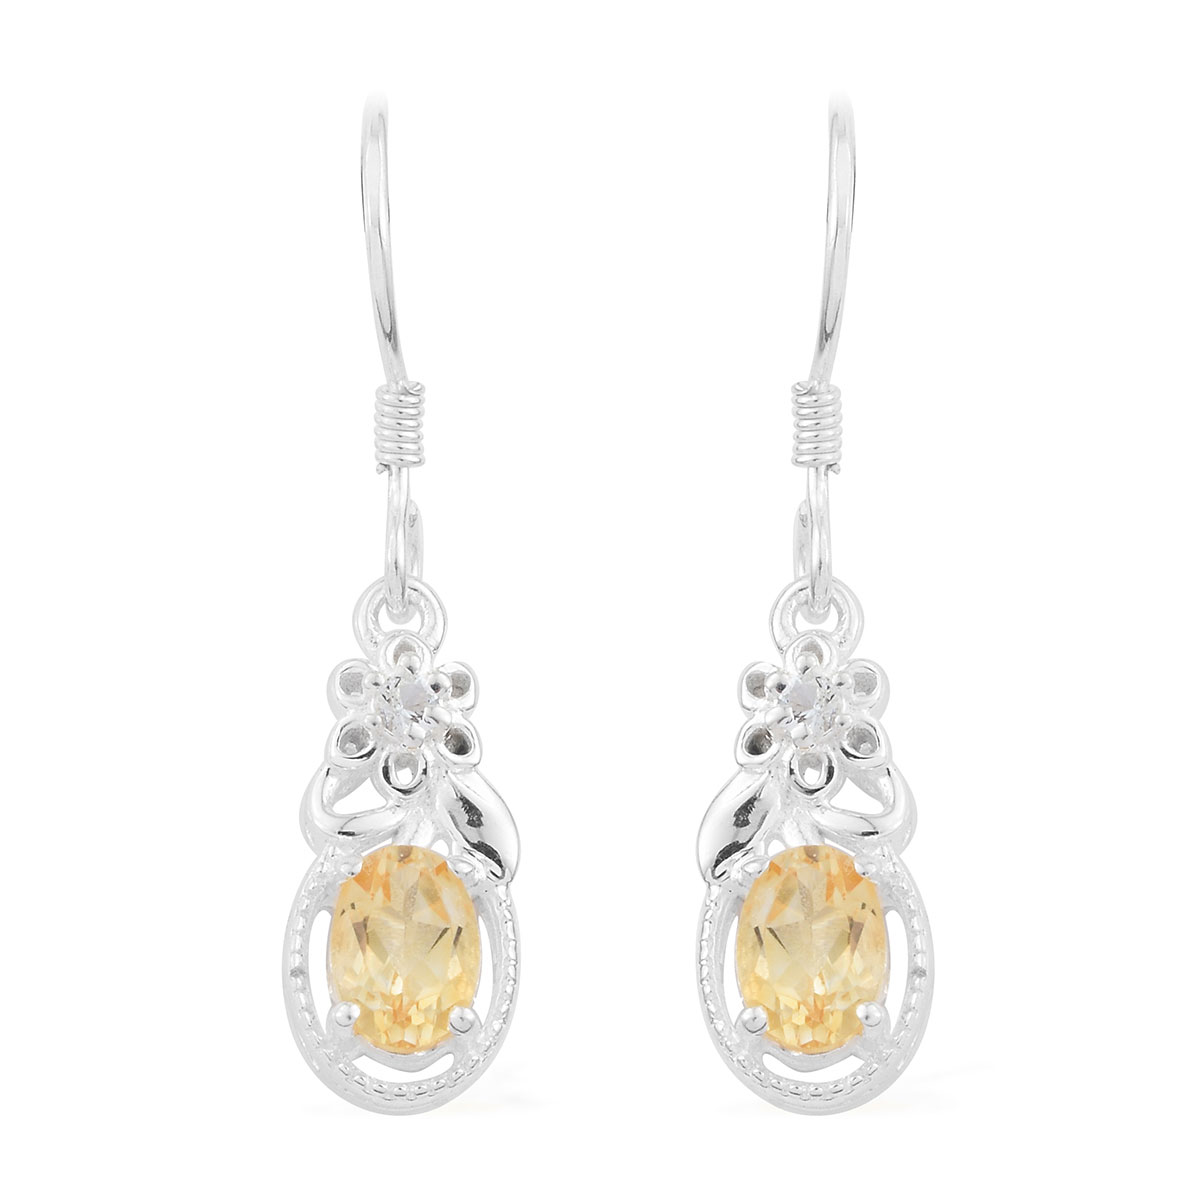 Details About 925 Sterling Silver Citrine White Topaz Earrings Gift Jewelry For Women Ct 1 3